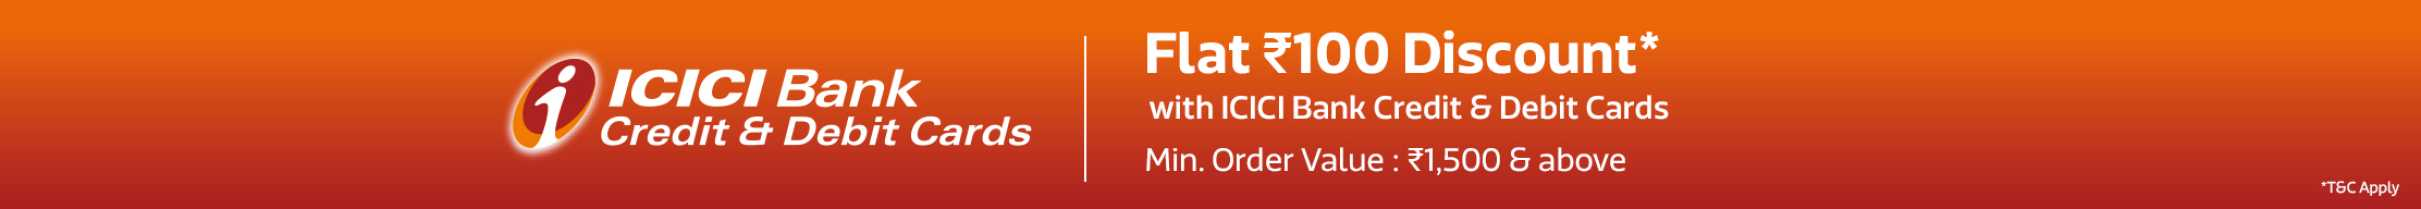 ICICI6th-10thJuly2020ENGDt